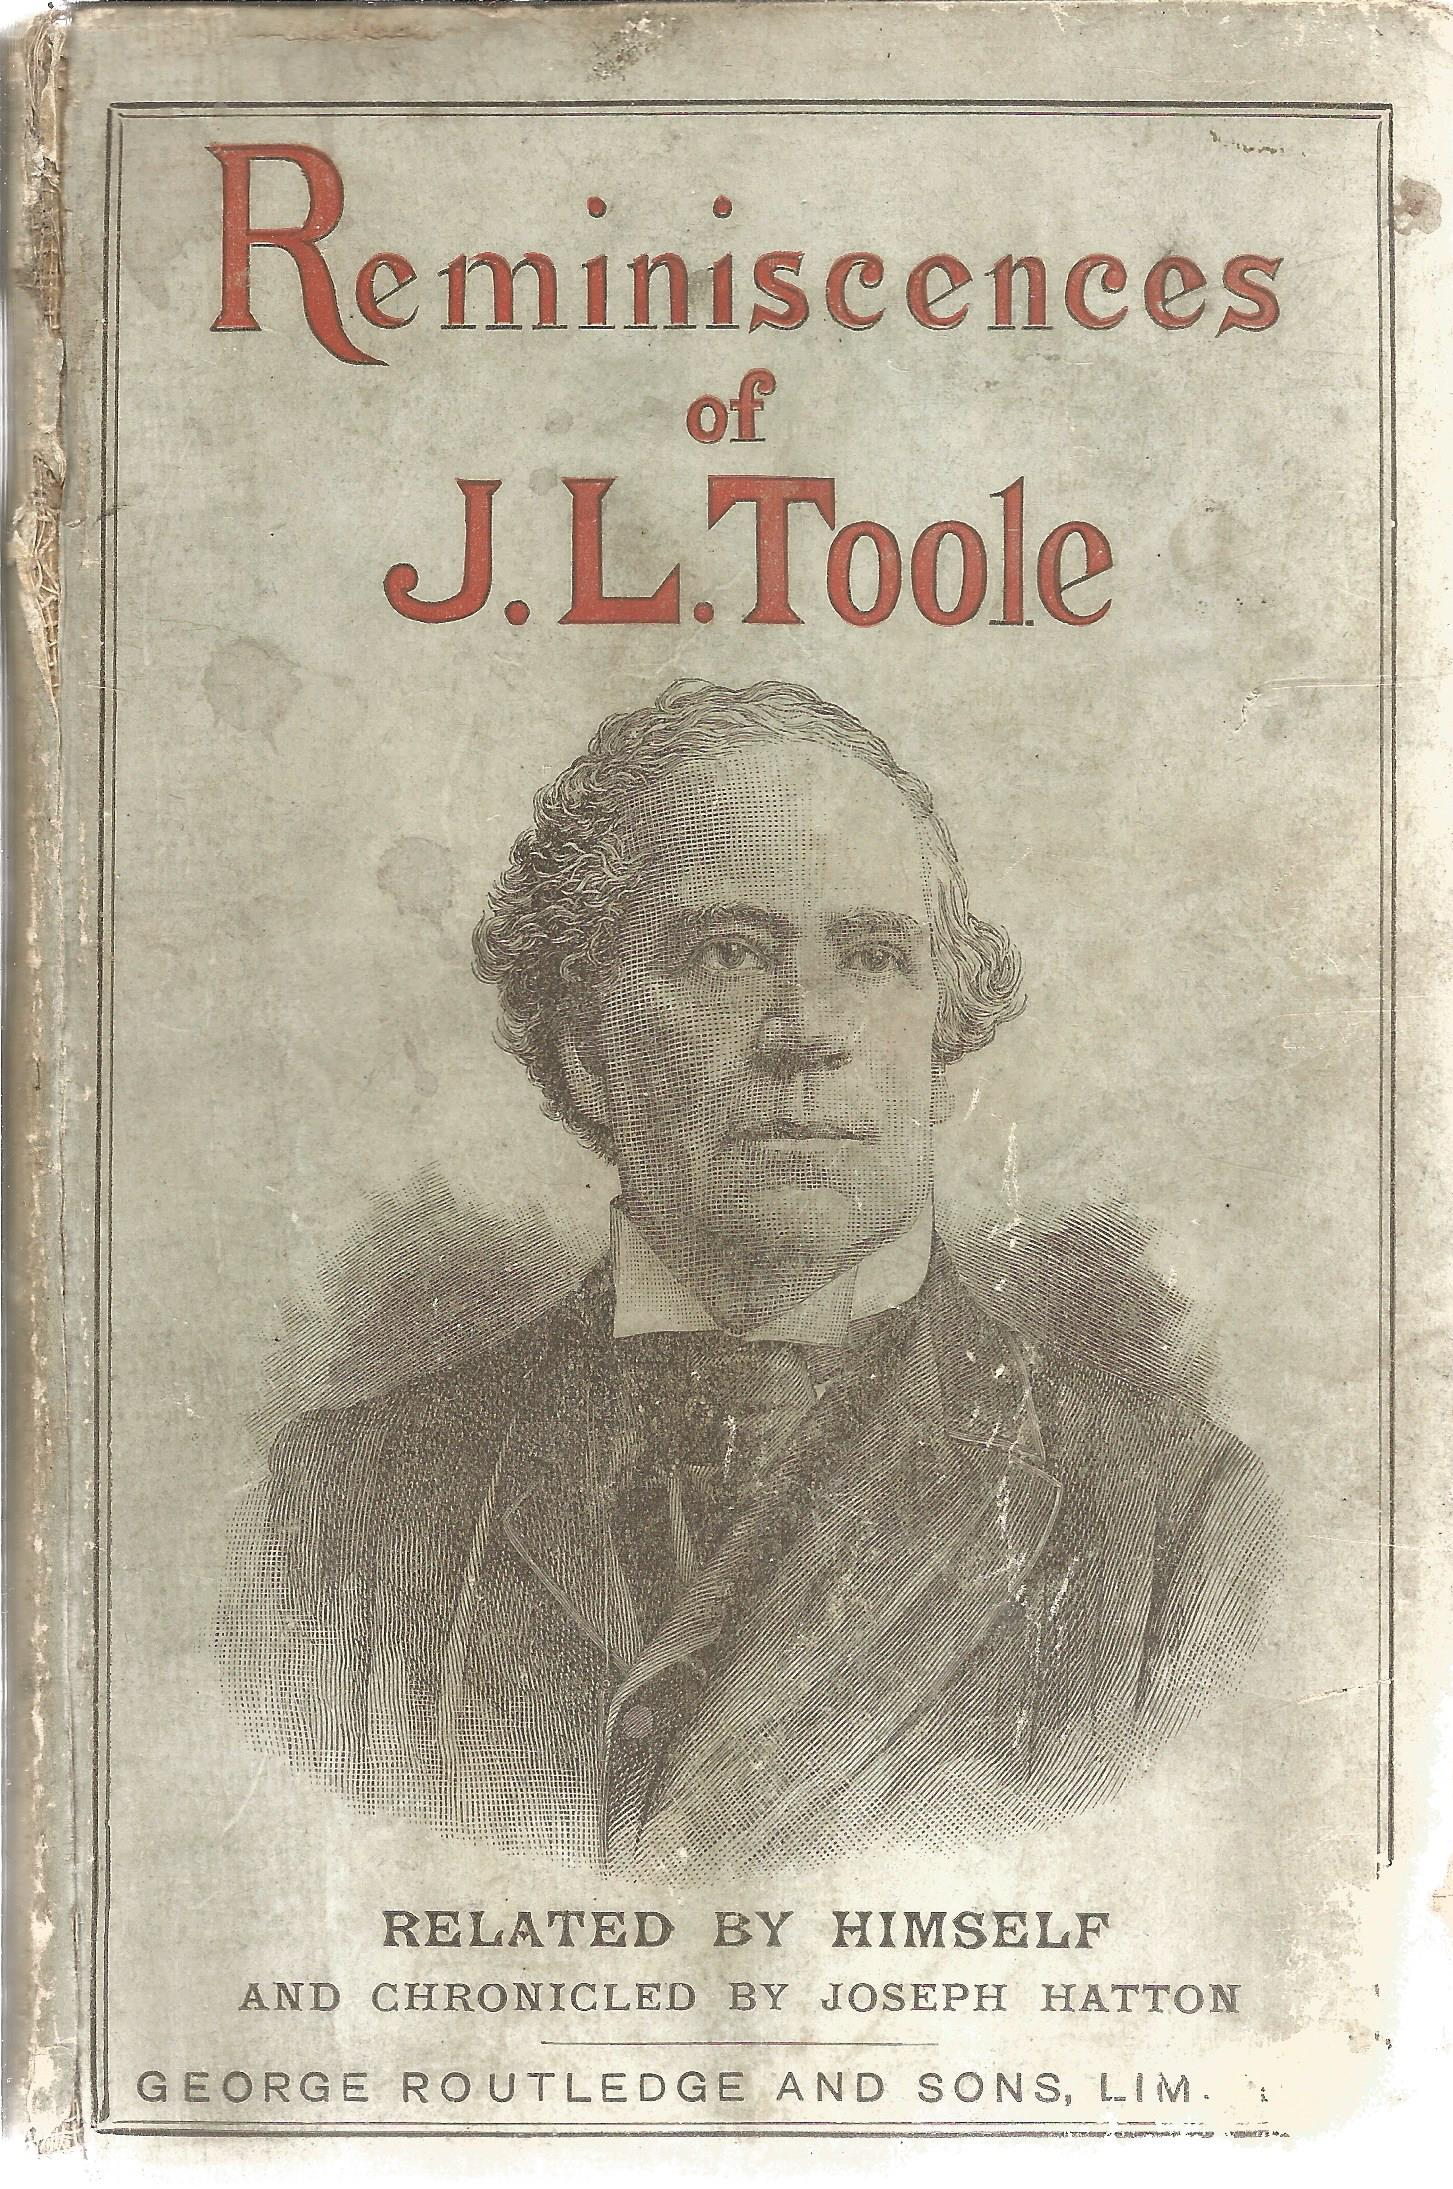 J. L. Toole vintage signed hardback book titled Reminiscences. This wonderful book has a signed